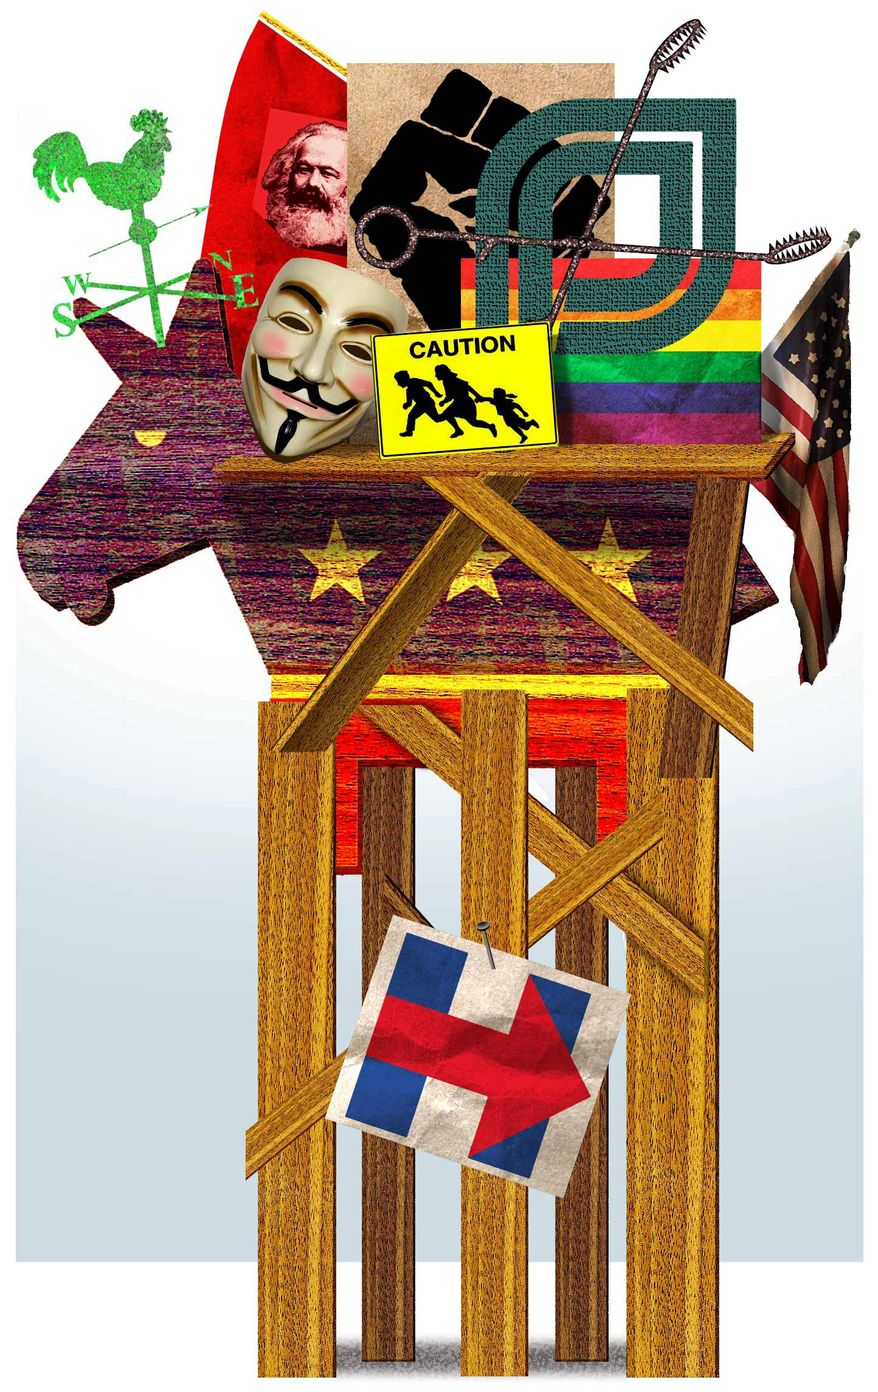 Illustration on Hillary Clinton's position in support of the Democratic base by Alexander Hunter/The Washington Times